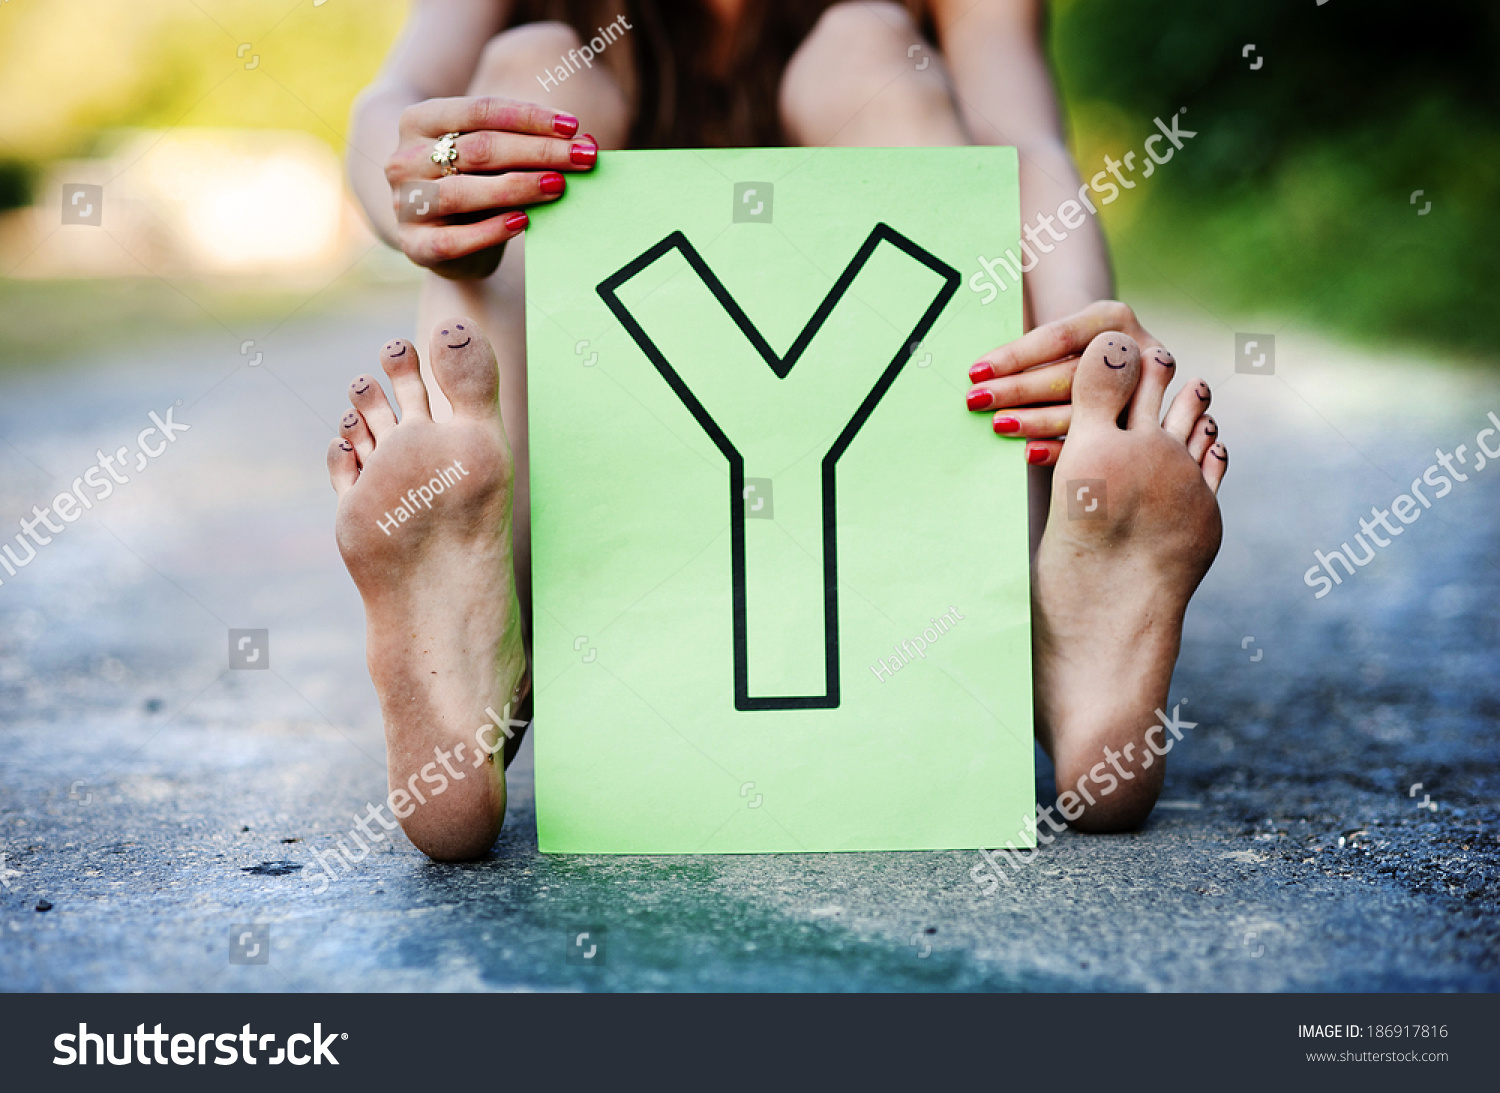 https://image.shutterstock.com/shutterstock/photos/186917816/display_1500/stock-photo-detail-of-beautiful-teenage-girl-showing-letter-y-in-green-sunny-park-186917816.jpg